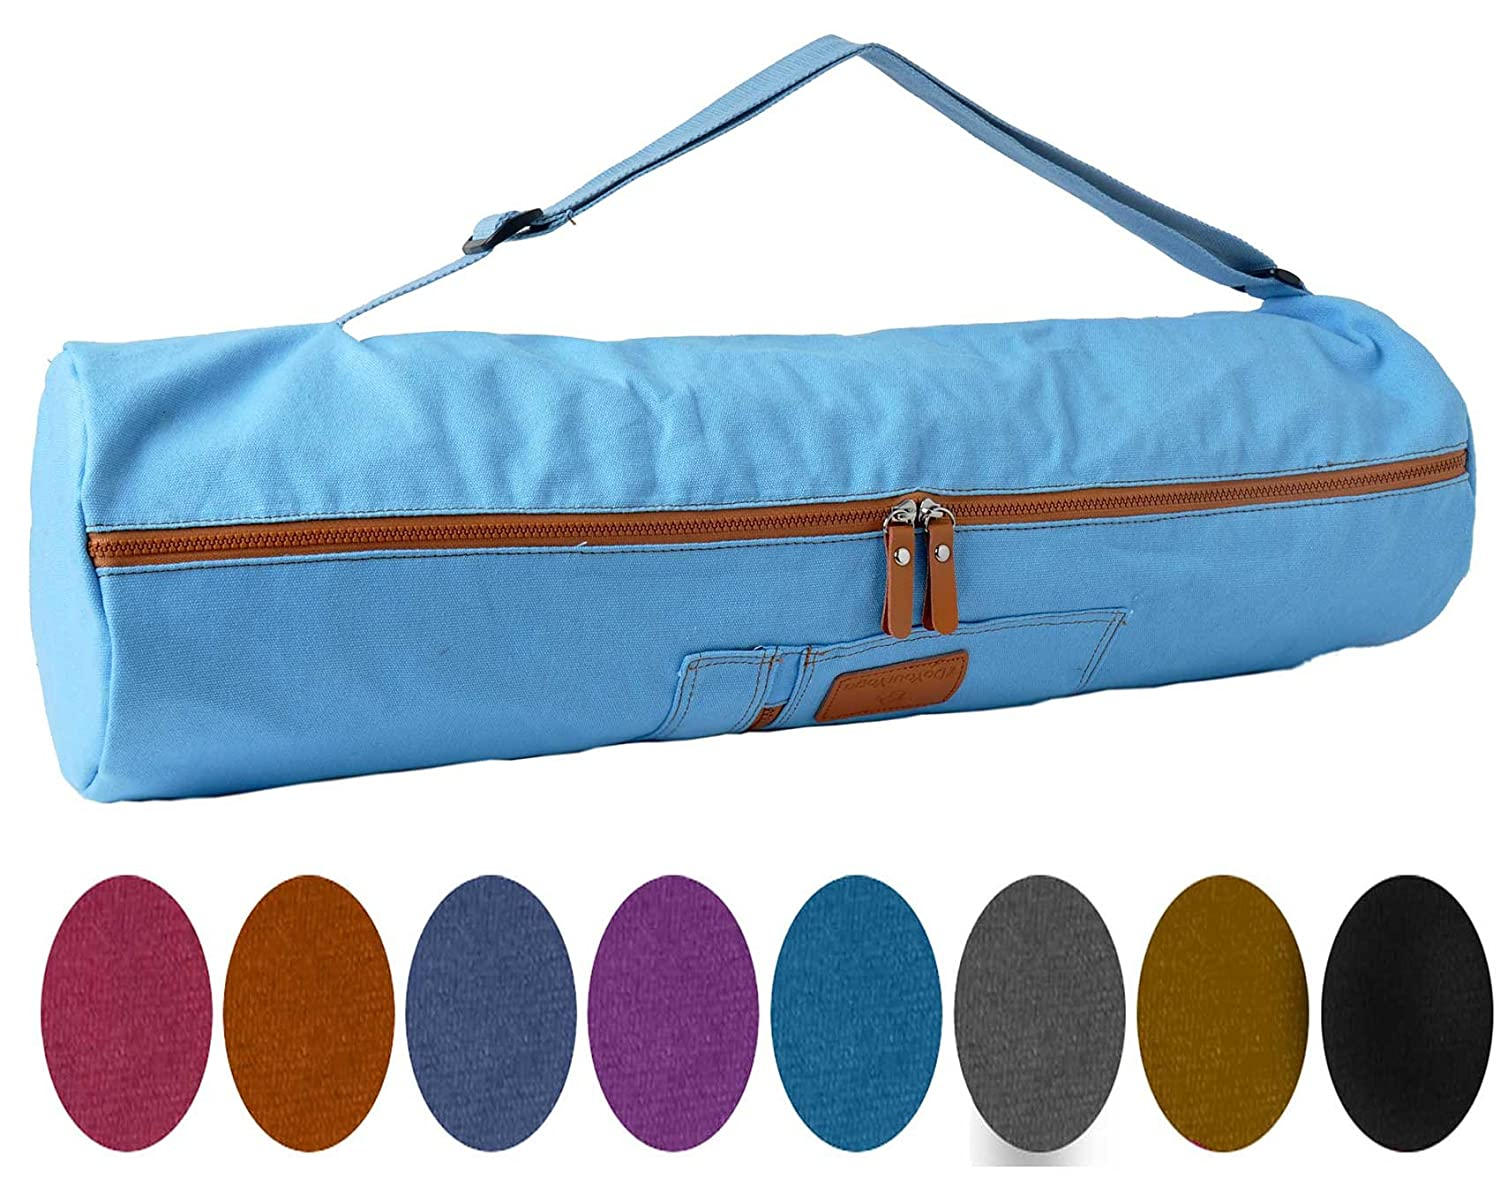 #DoYourYoga Yoga mat bag »Sunita« from 100% cotton - Multi-Functional Storage Pocket - For yoga mats up to a size of 180 x 60 x 0.3 cm - available in 9 beautiful colours. #DoYourSports